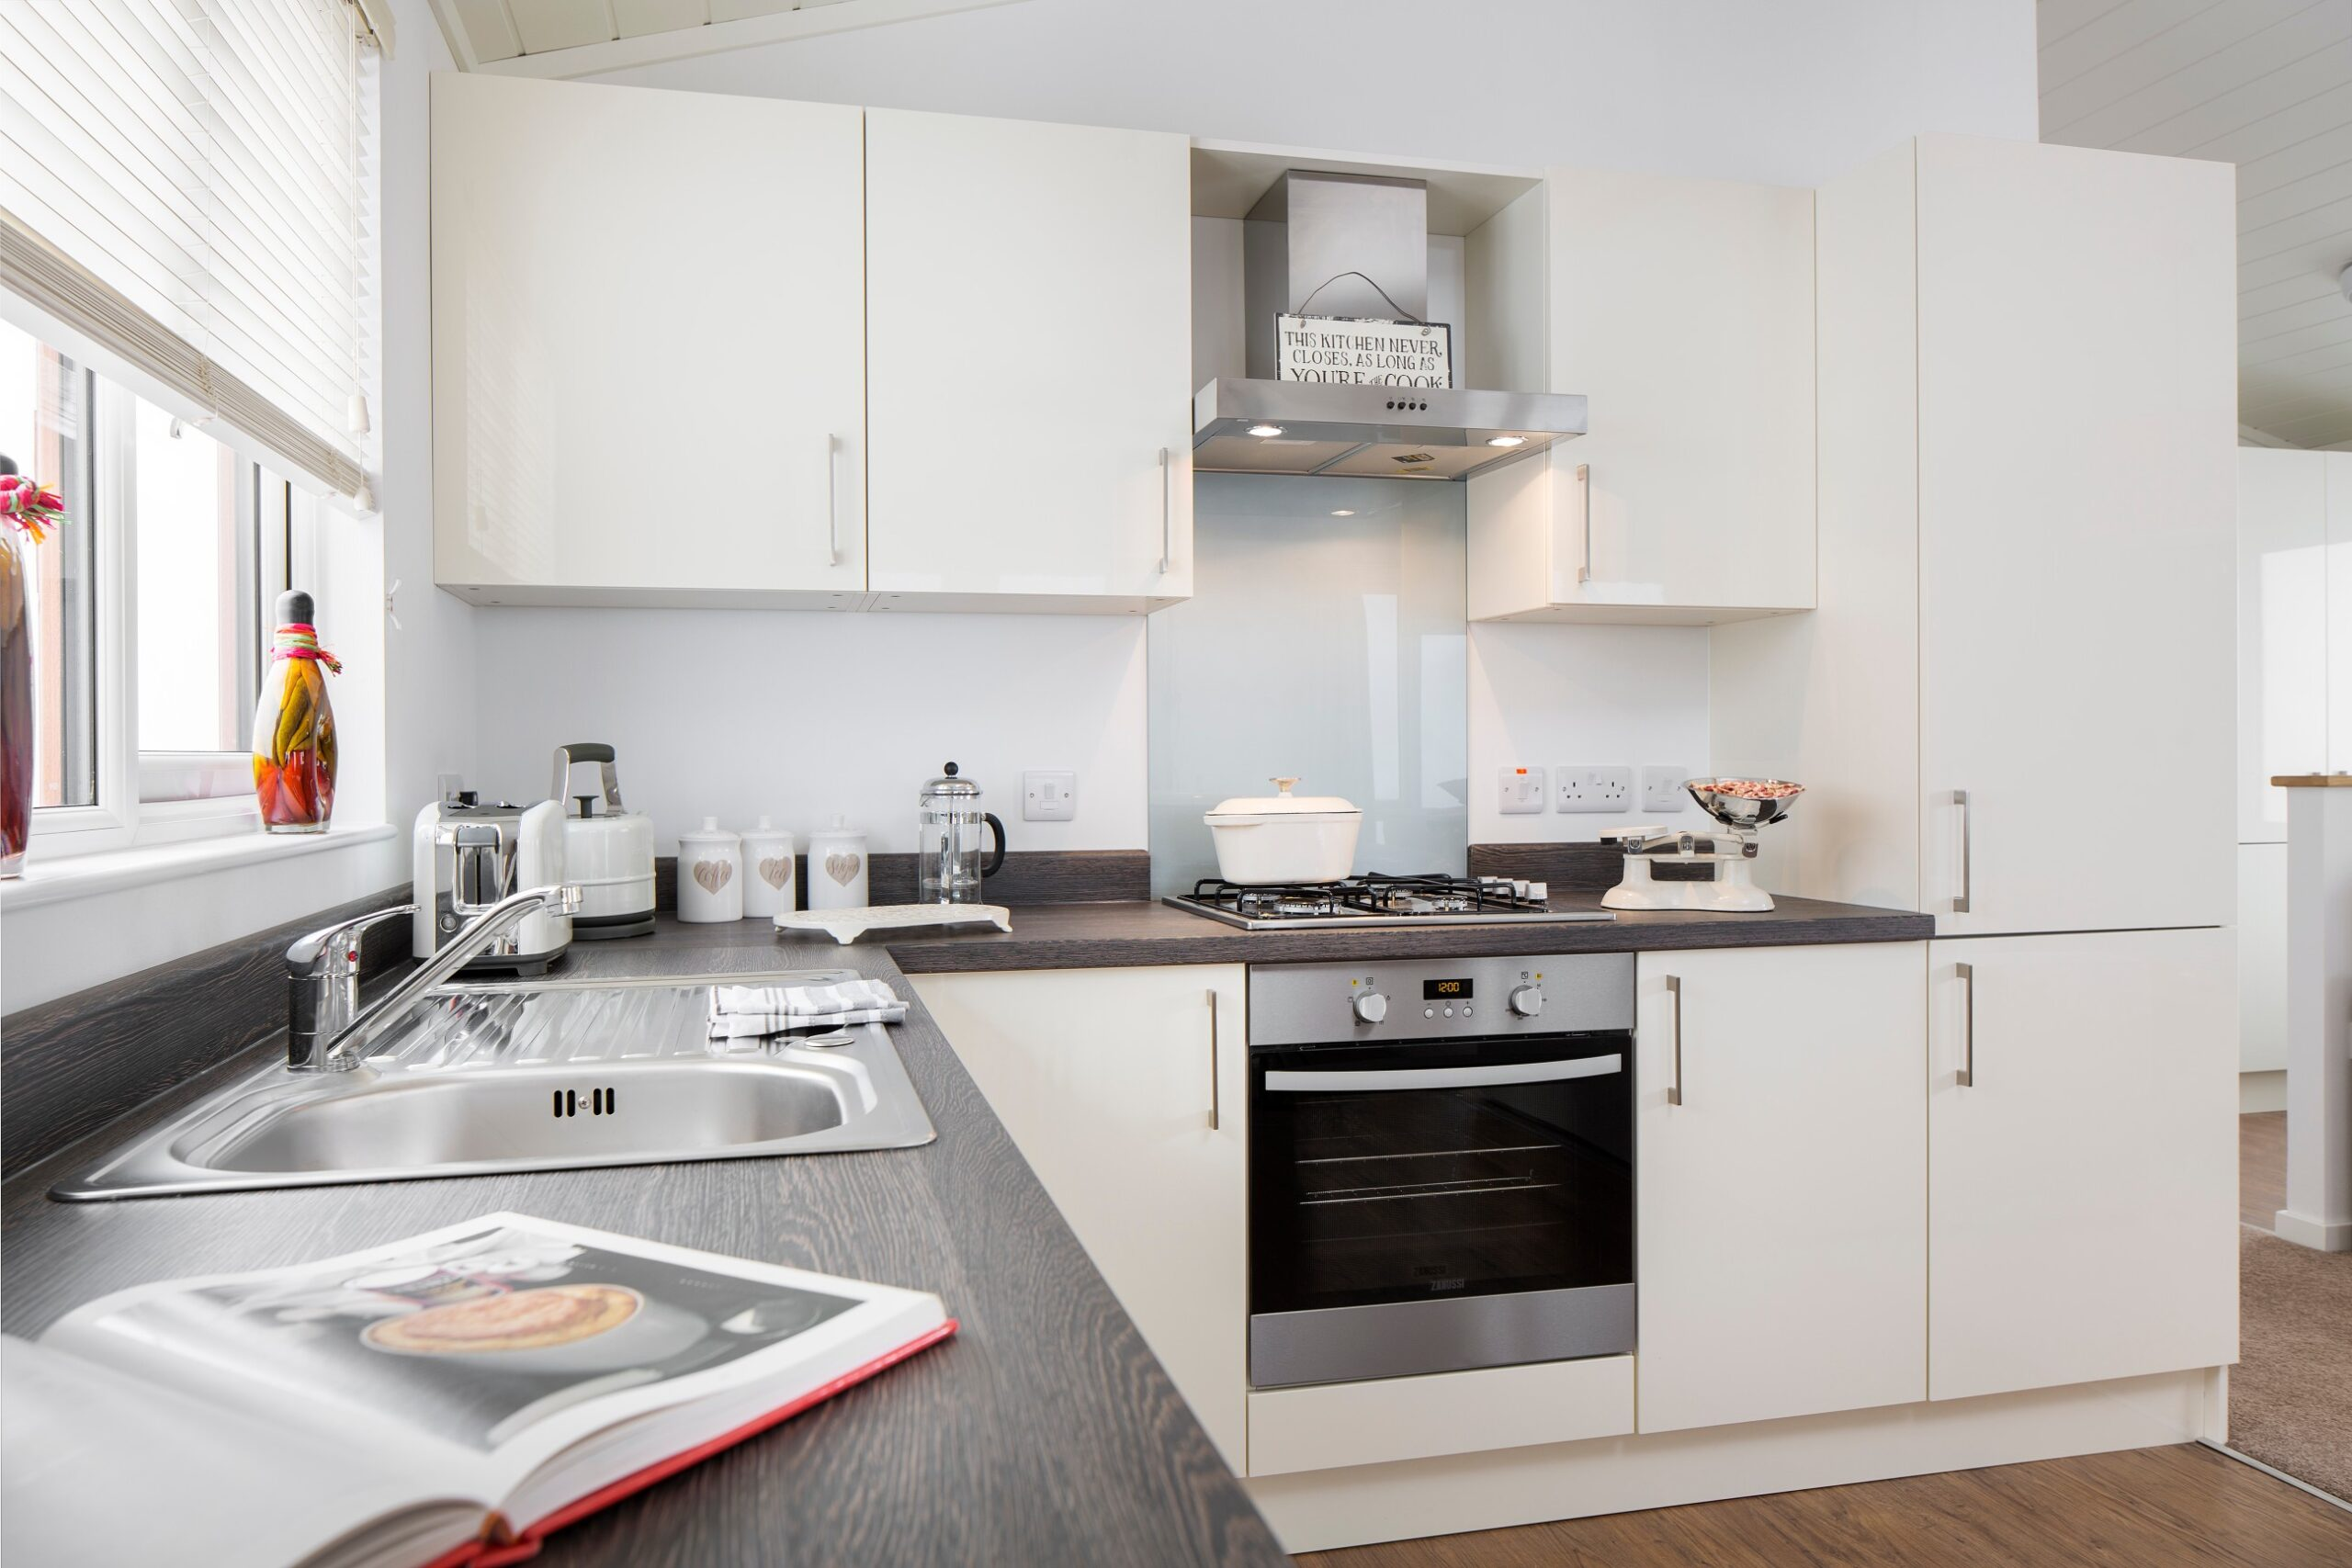 sovereign modular buildings - interior of park home and holiday lodge example - kitchen specification example